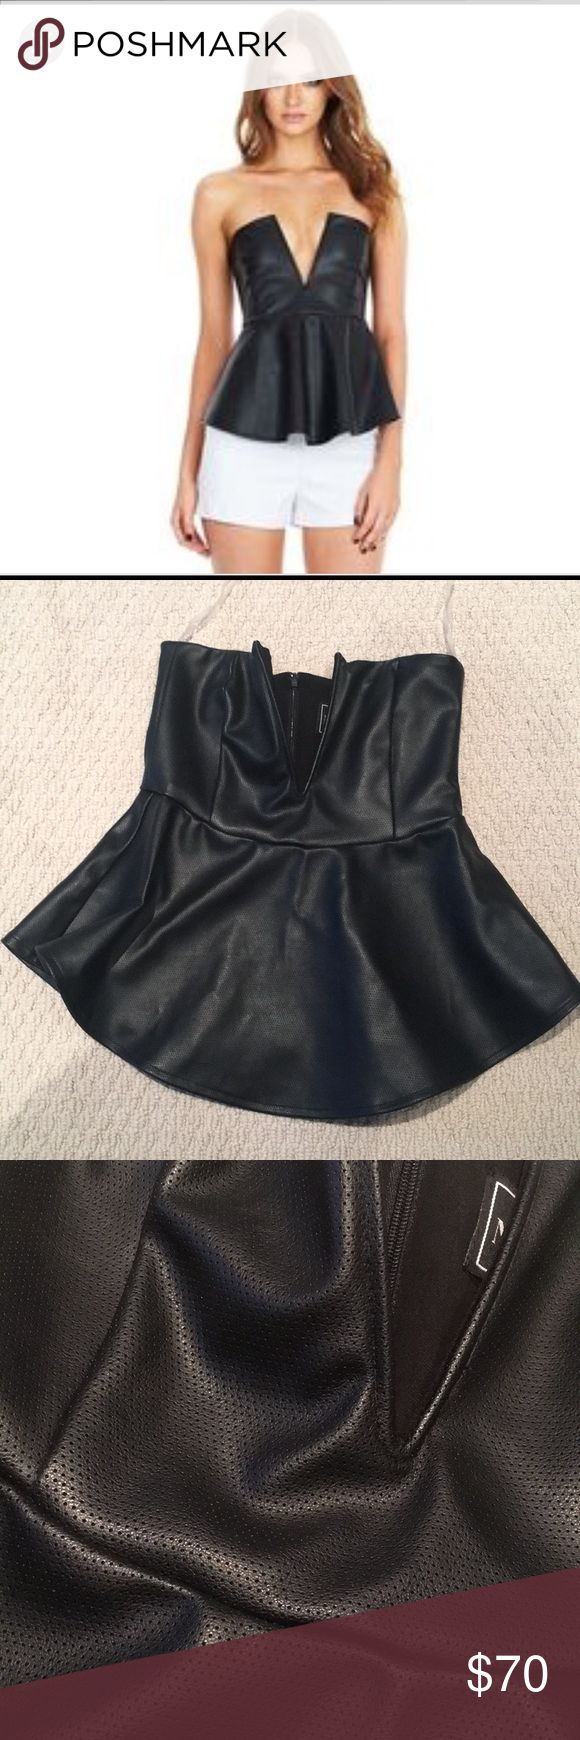 Nookie Leather Peplum Nookie Oracle V neck Peplum top faux leather. AUS size 8, Fits like a size 4/6 Nookie Tops